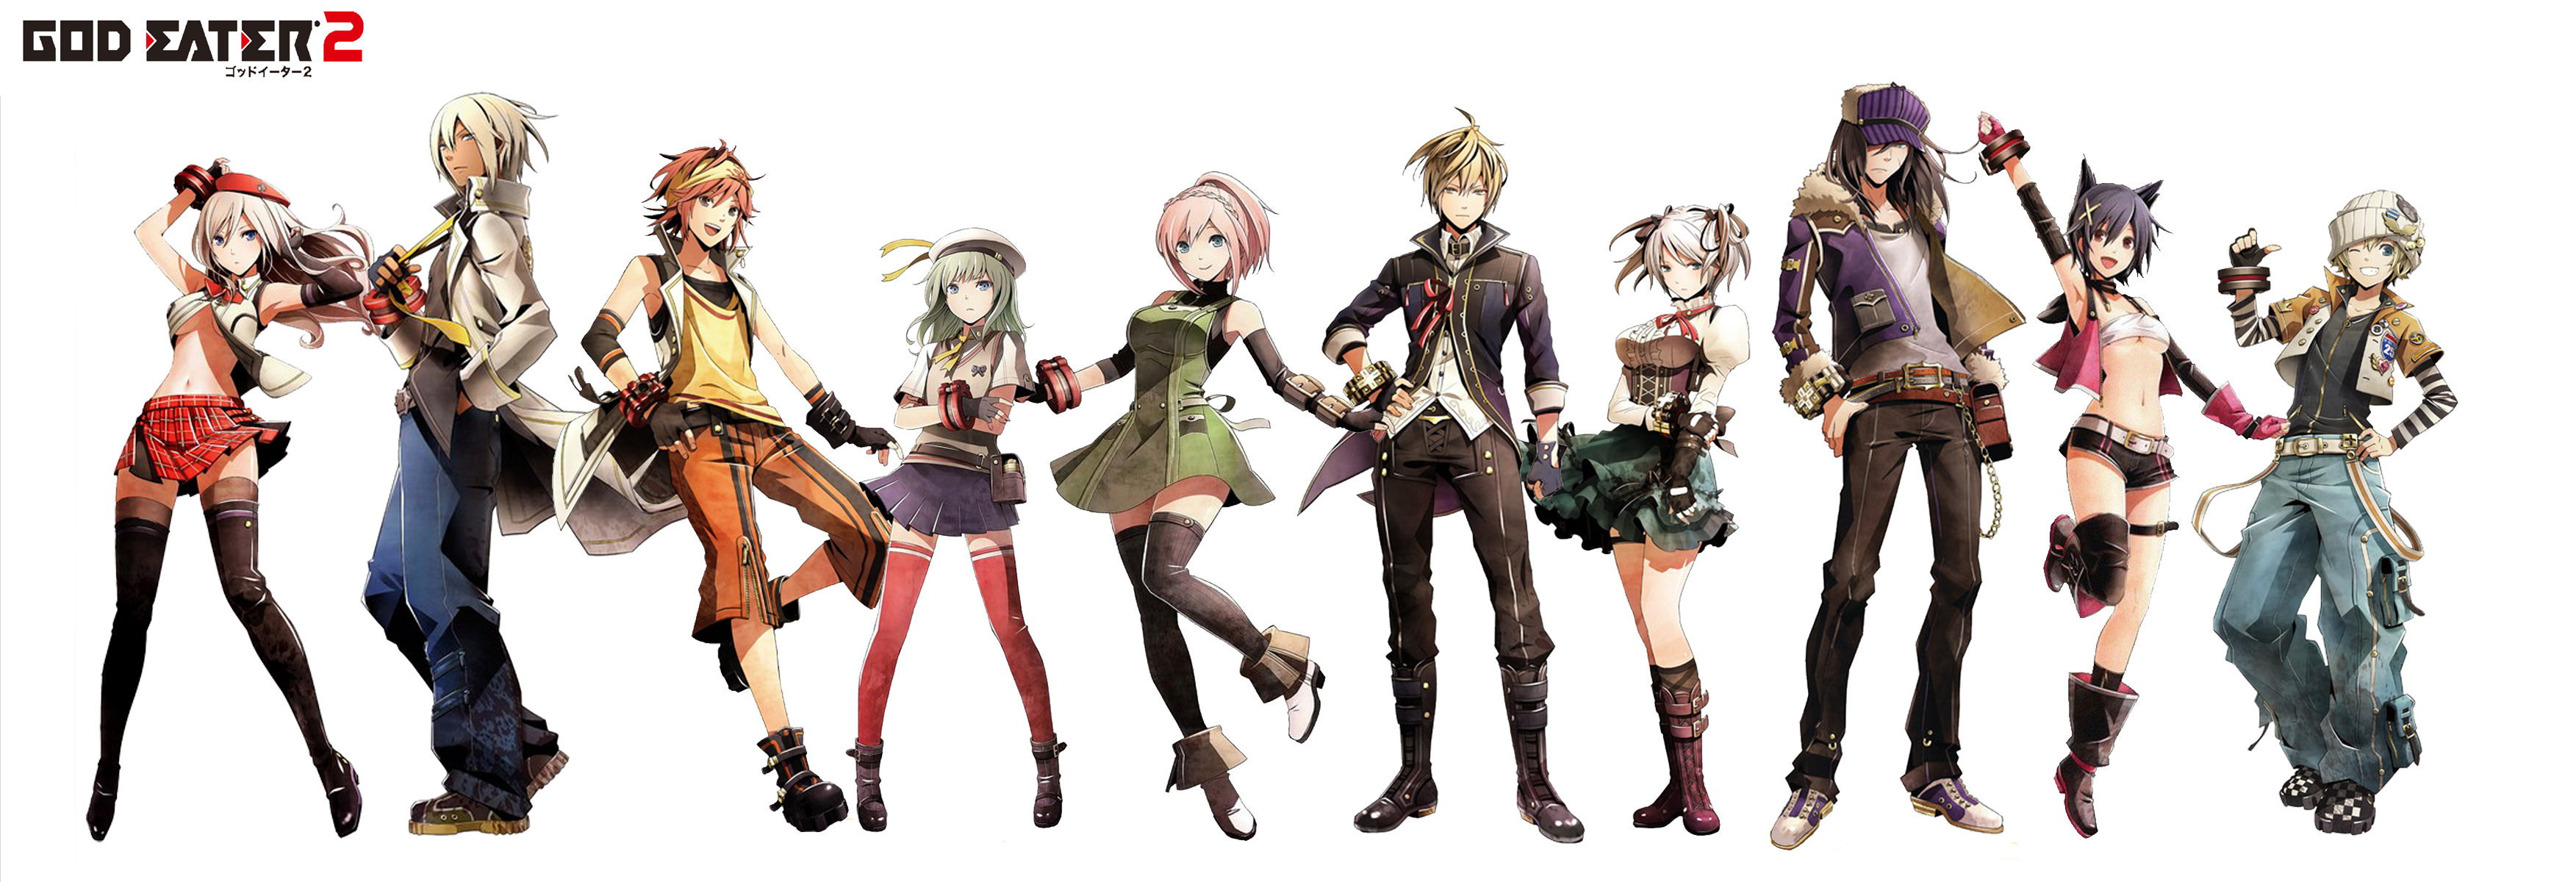 Nice wallpapers God Eater 3505x1200px